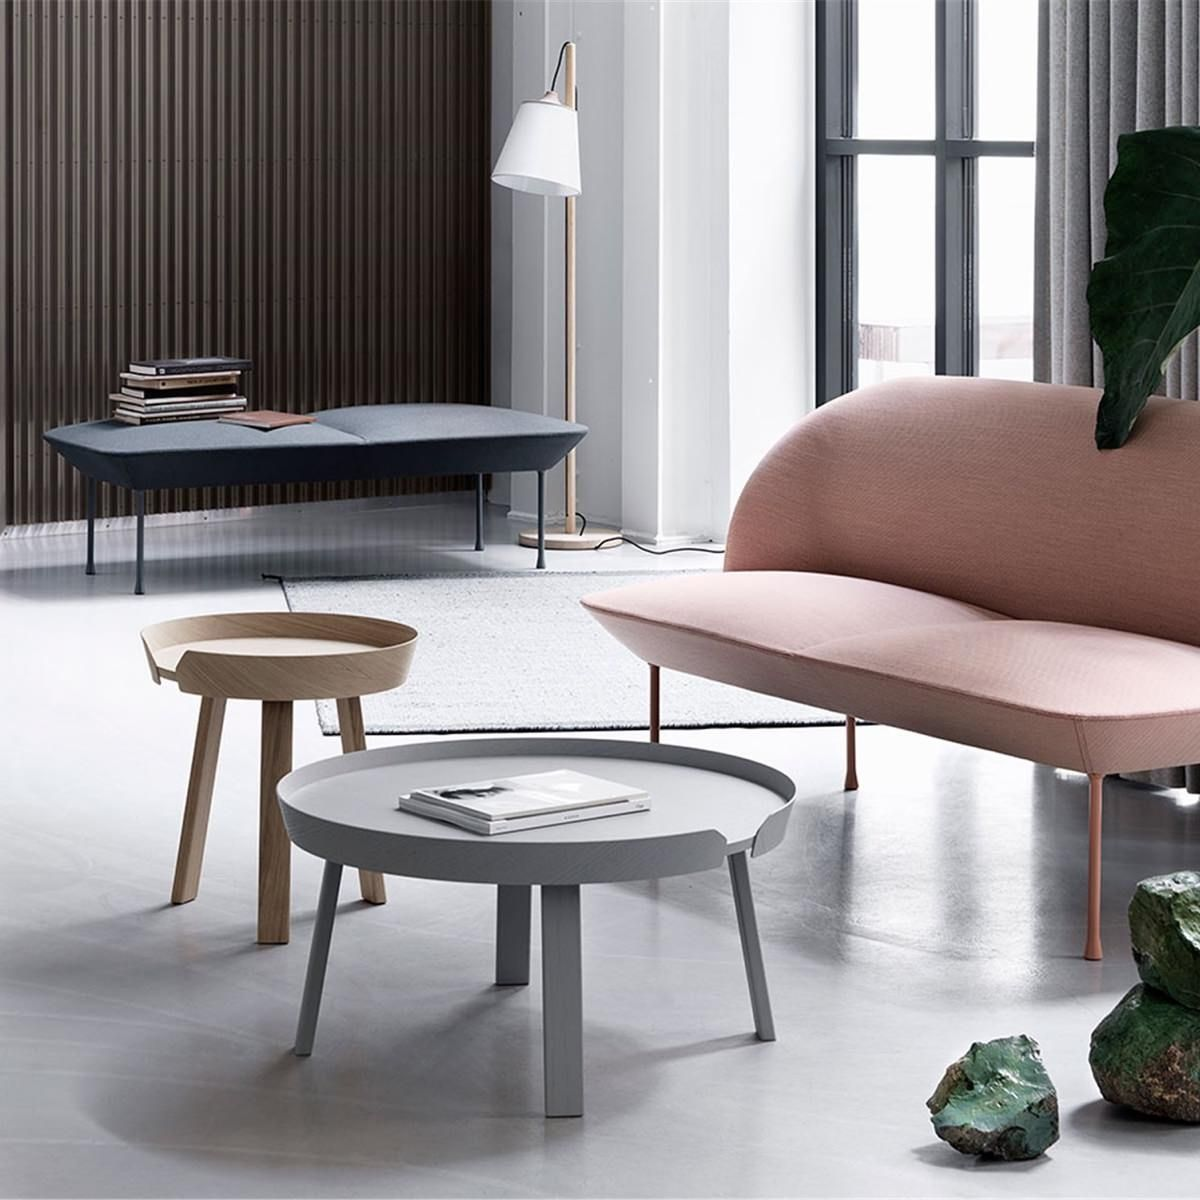 Muuto Pull Floor Lamp in an interior next to bench